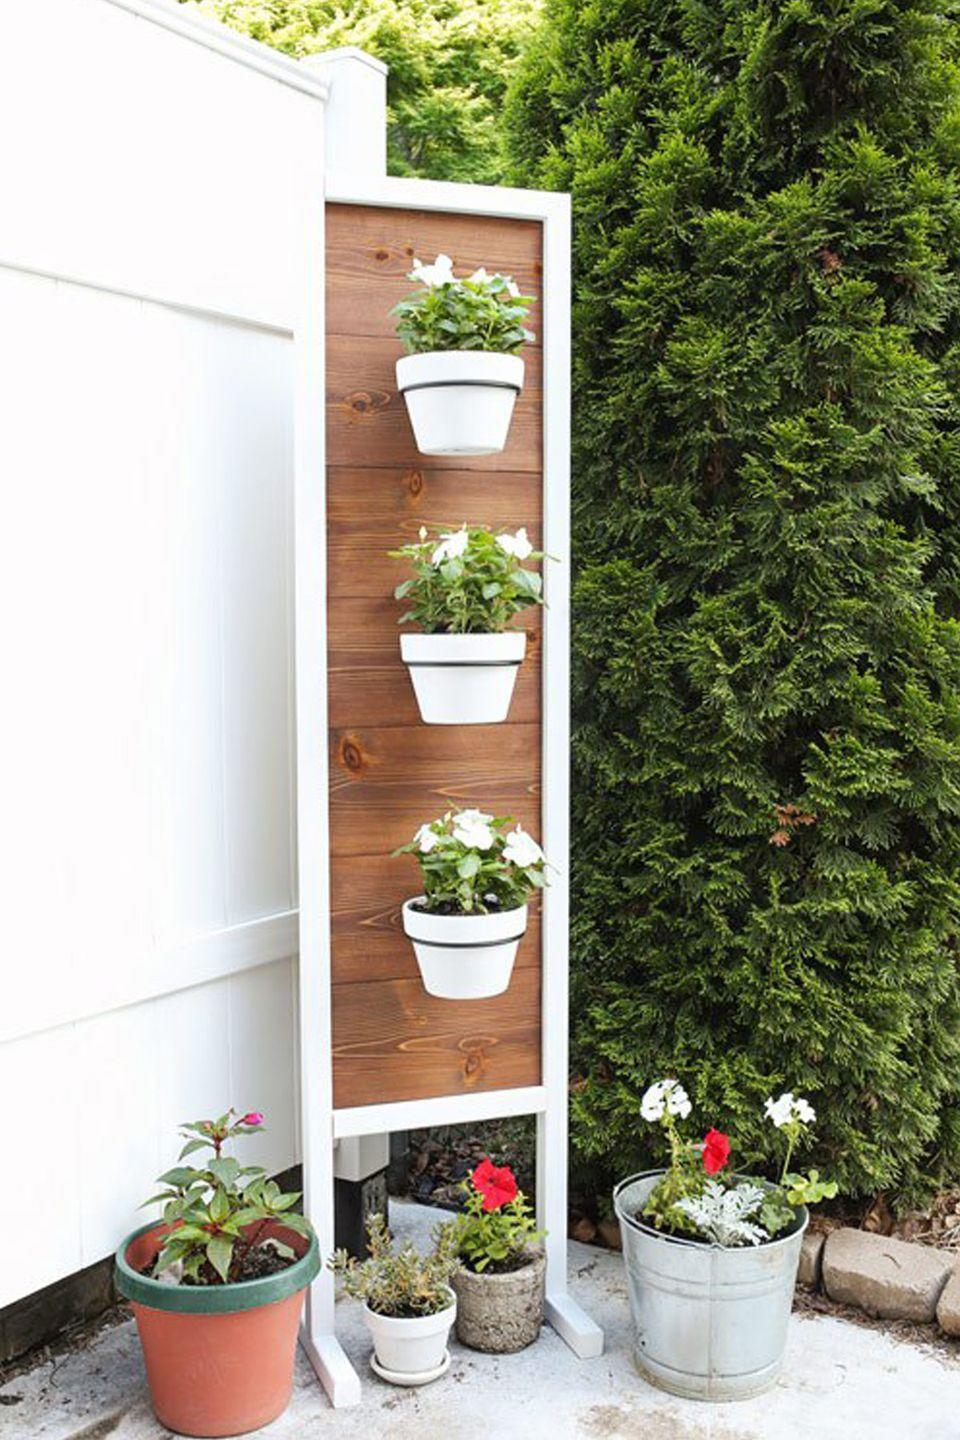 """<p>Not only does this DIY take up less surface area than multiple pots on the ground would, but it can also serve as a privacy fence for nosy neighbors. </p><p><em><a href=""""https://angelamariemade.com/2017/06/diy-vertical-planter-stand/"""" rel=""""nofollow noopener"""" target=""""_blank"""" data-ylk=""""slk:Get the tutorial at Angela Marie Made »"""" class=""""link rapid-noclick-resp"""">Get the tutorial at Angela Marie Made »</a></em></p>"""